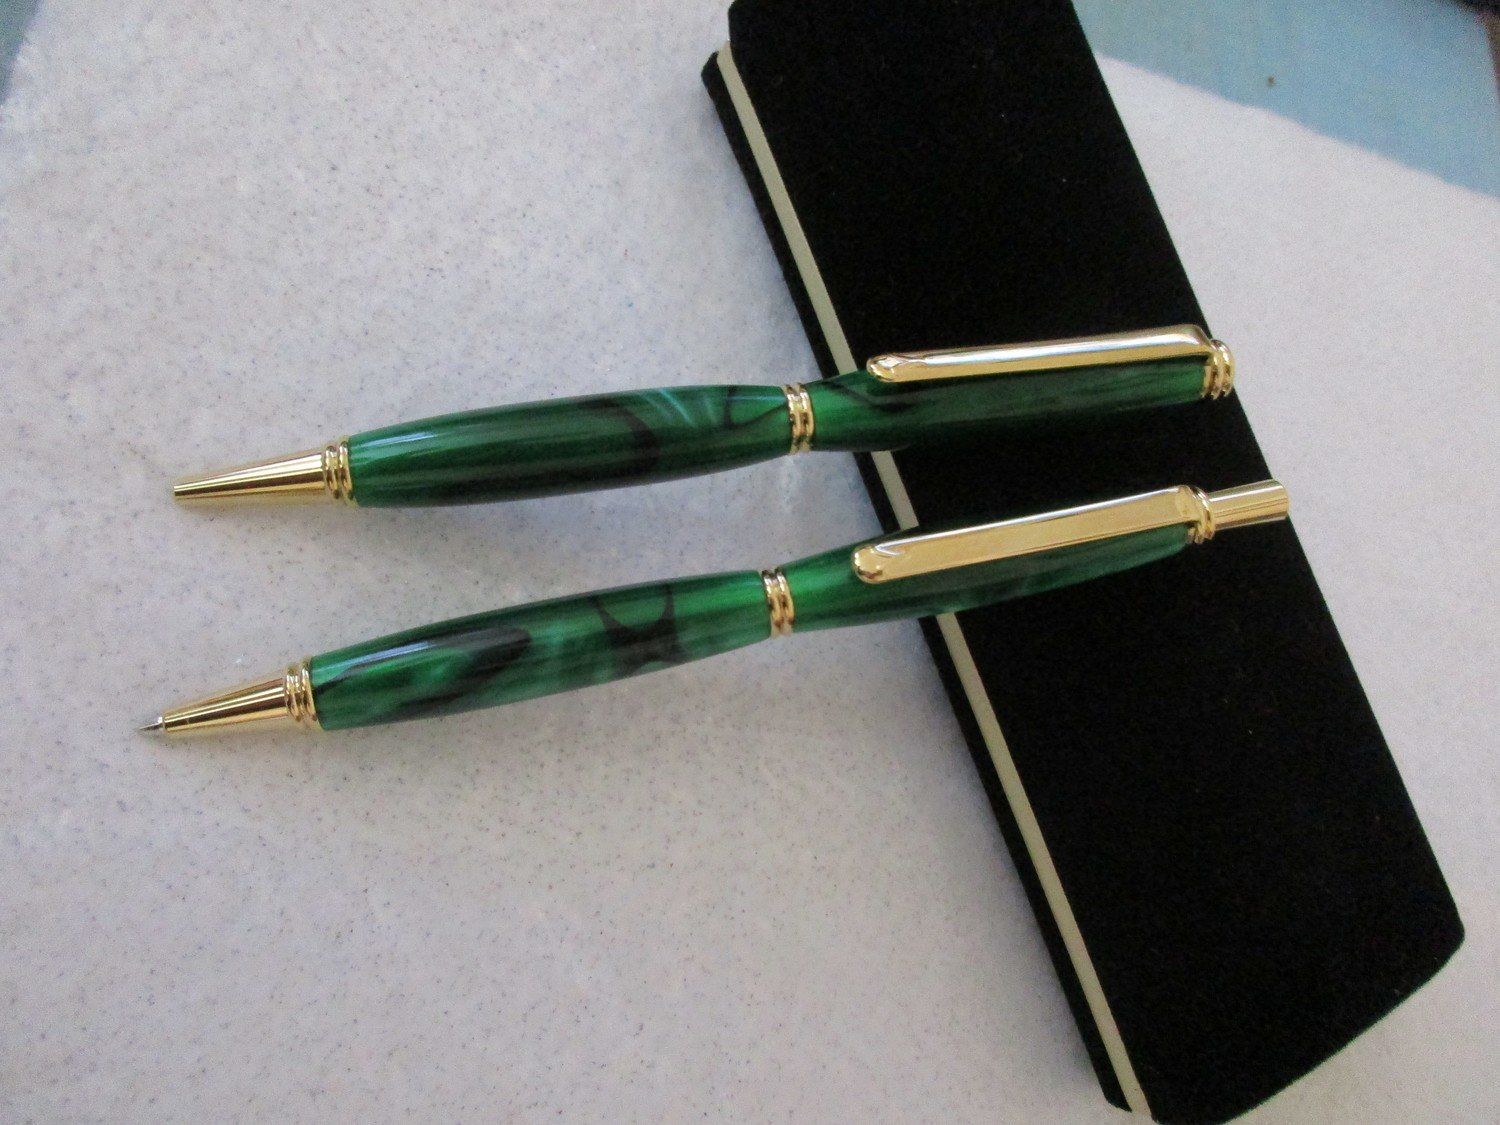 Beaded slimline pen and pencil set.